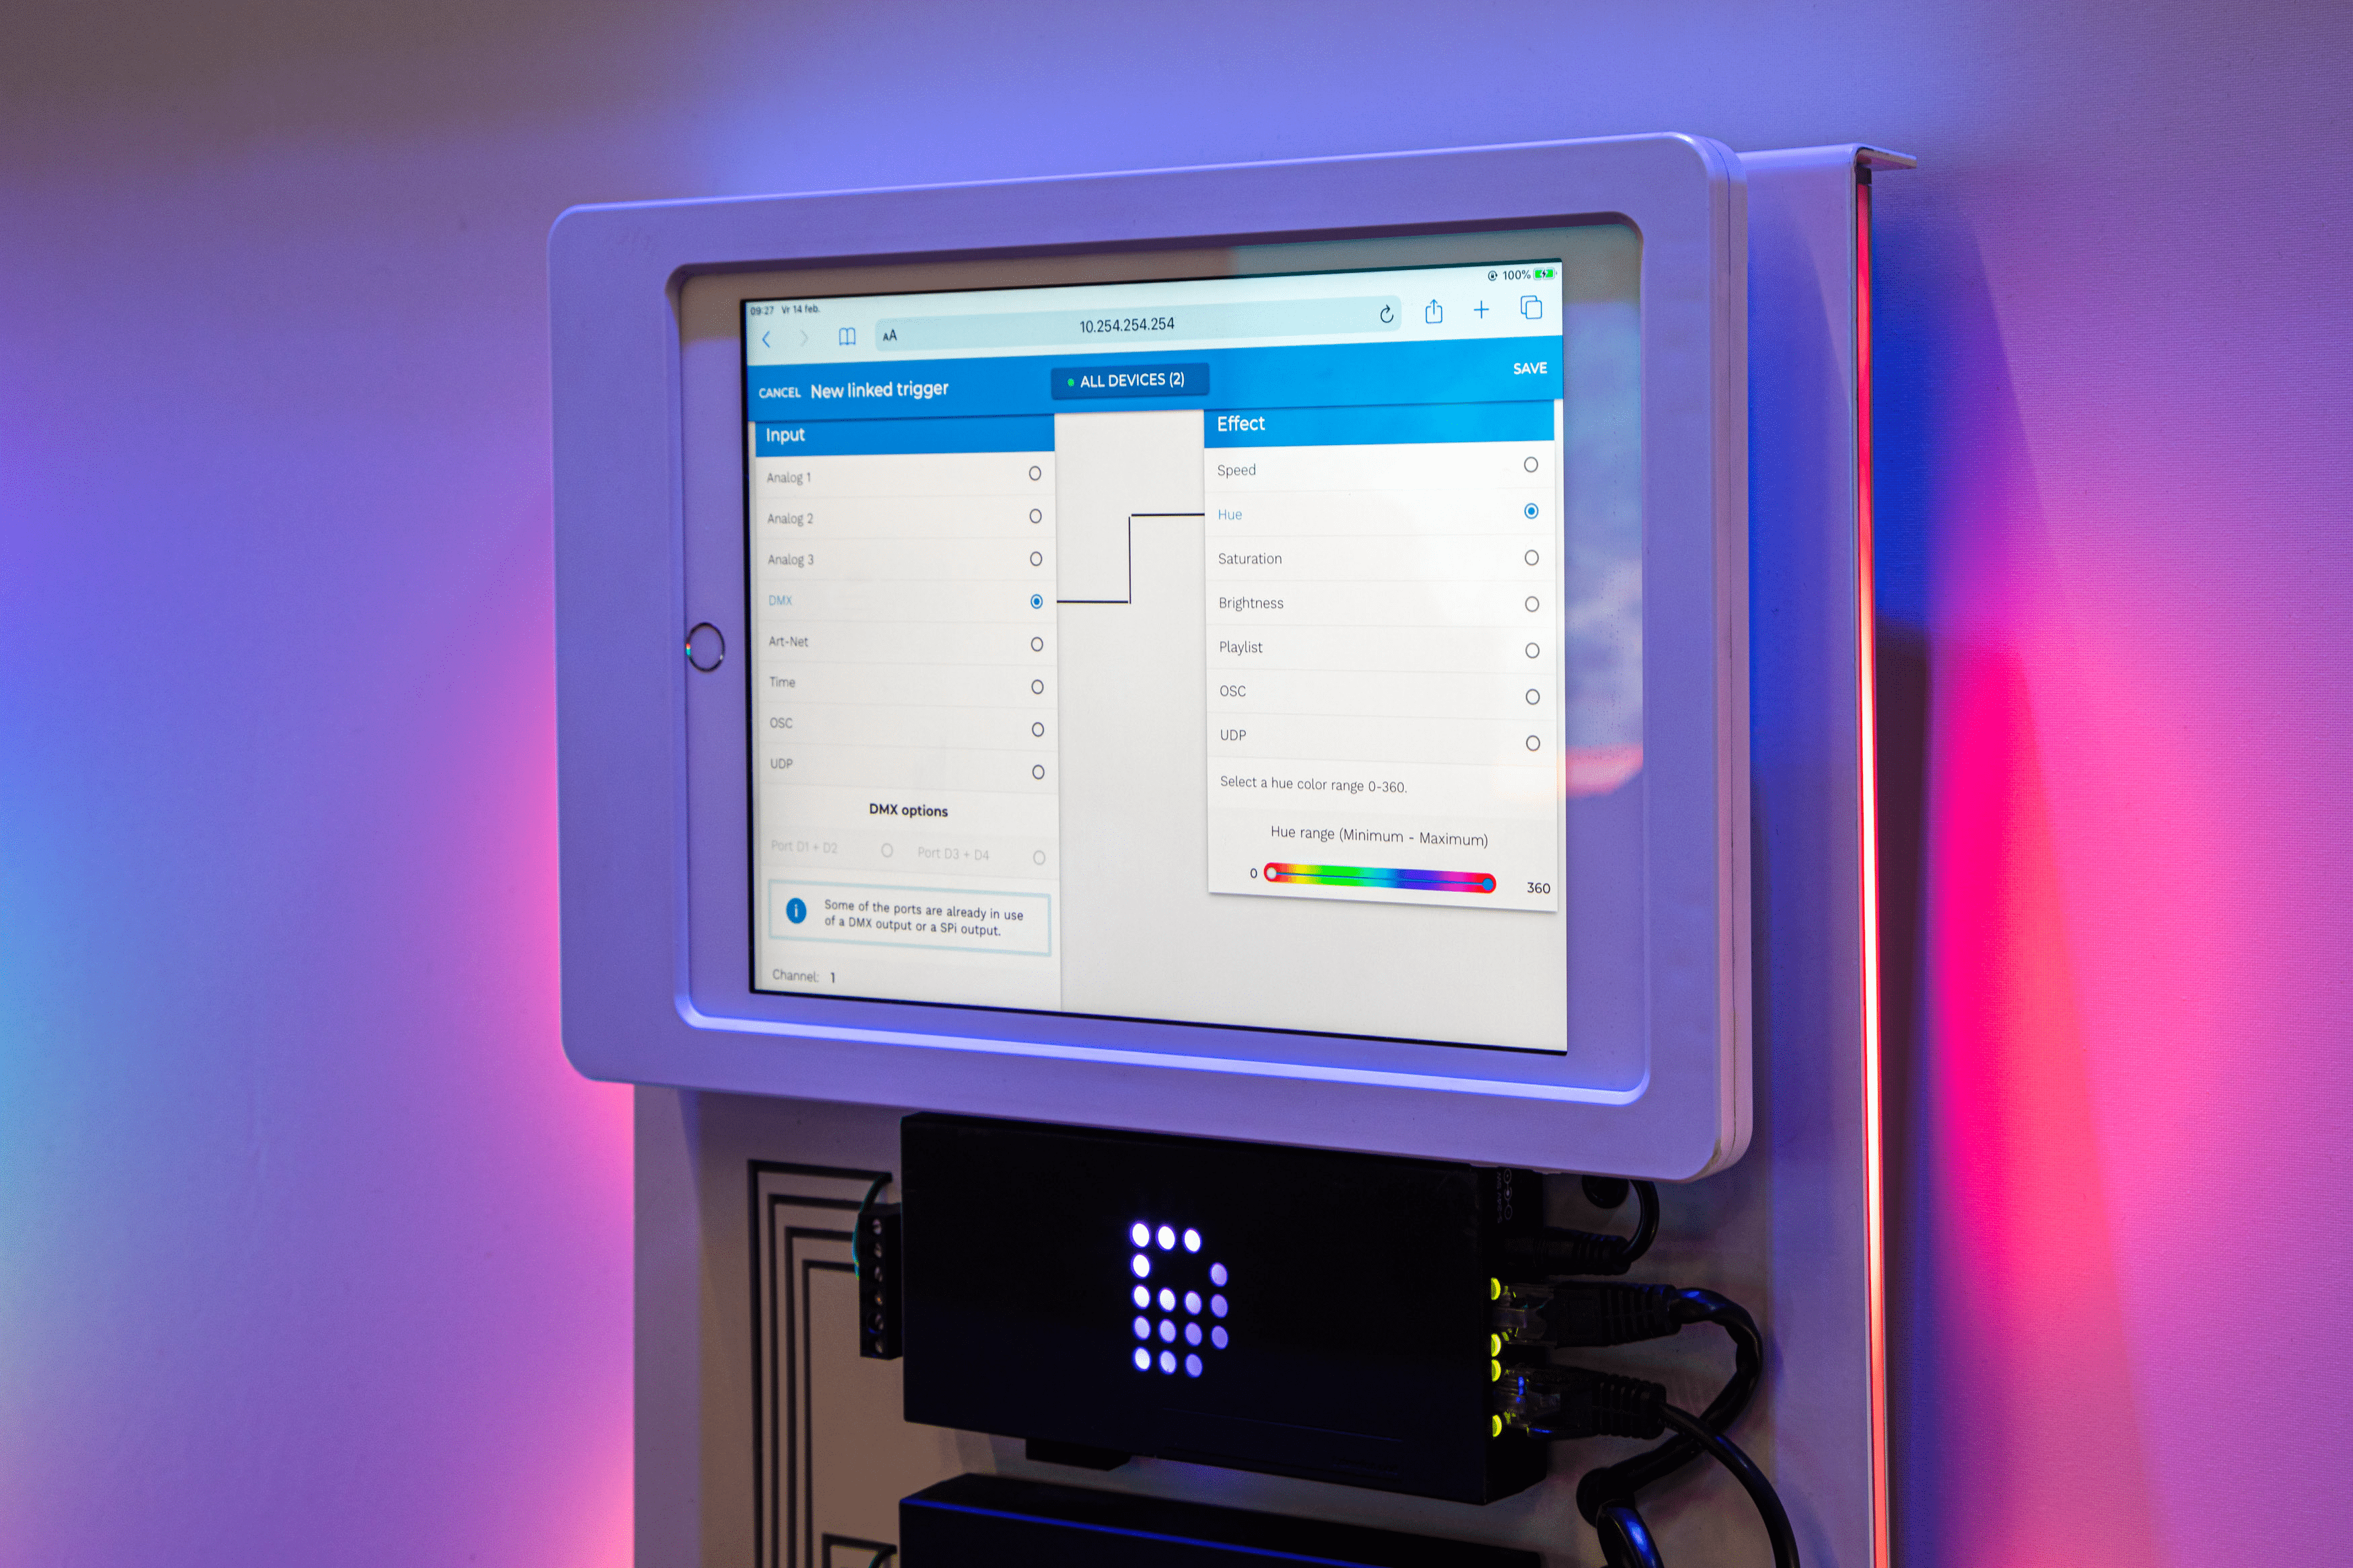 DiGidot interface on tablet